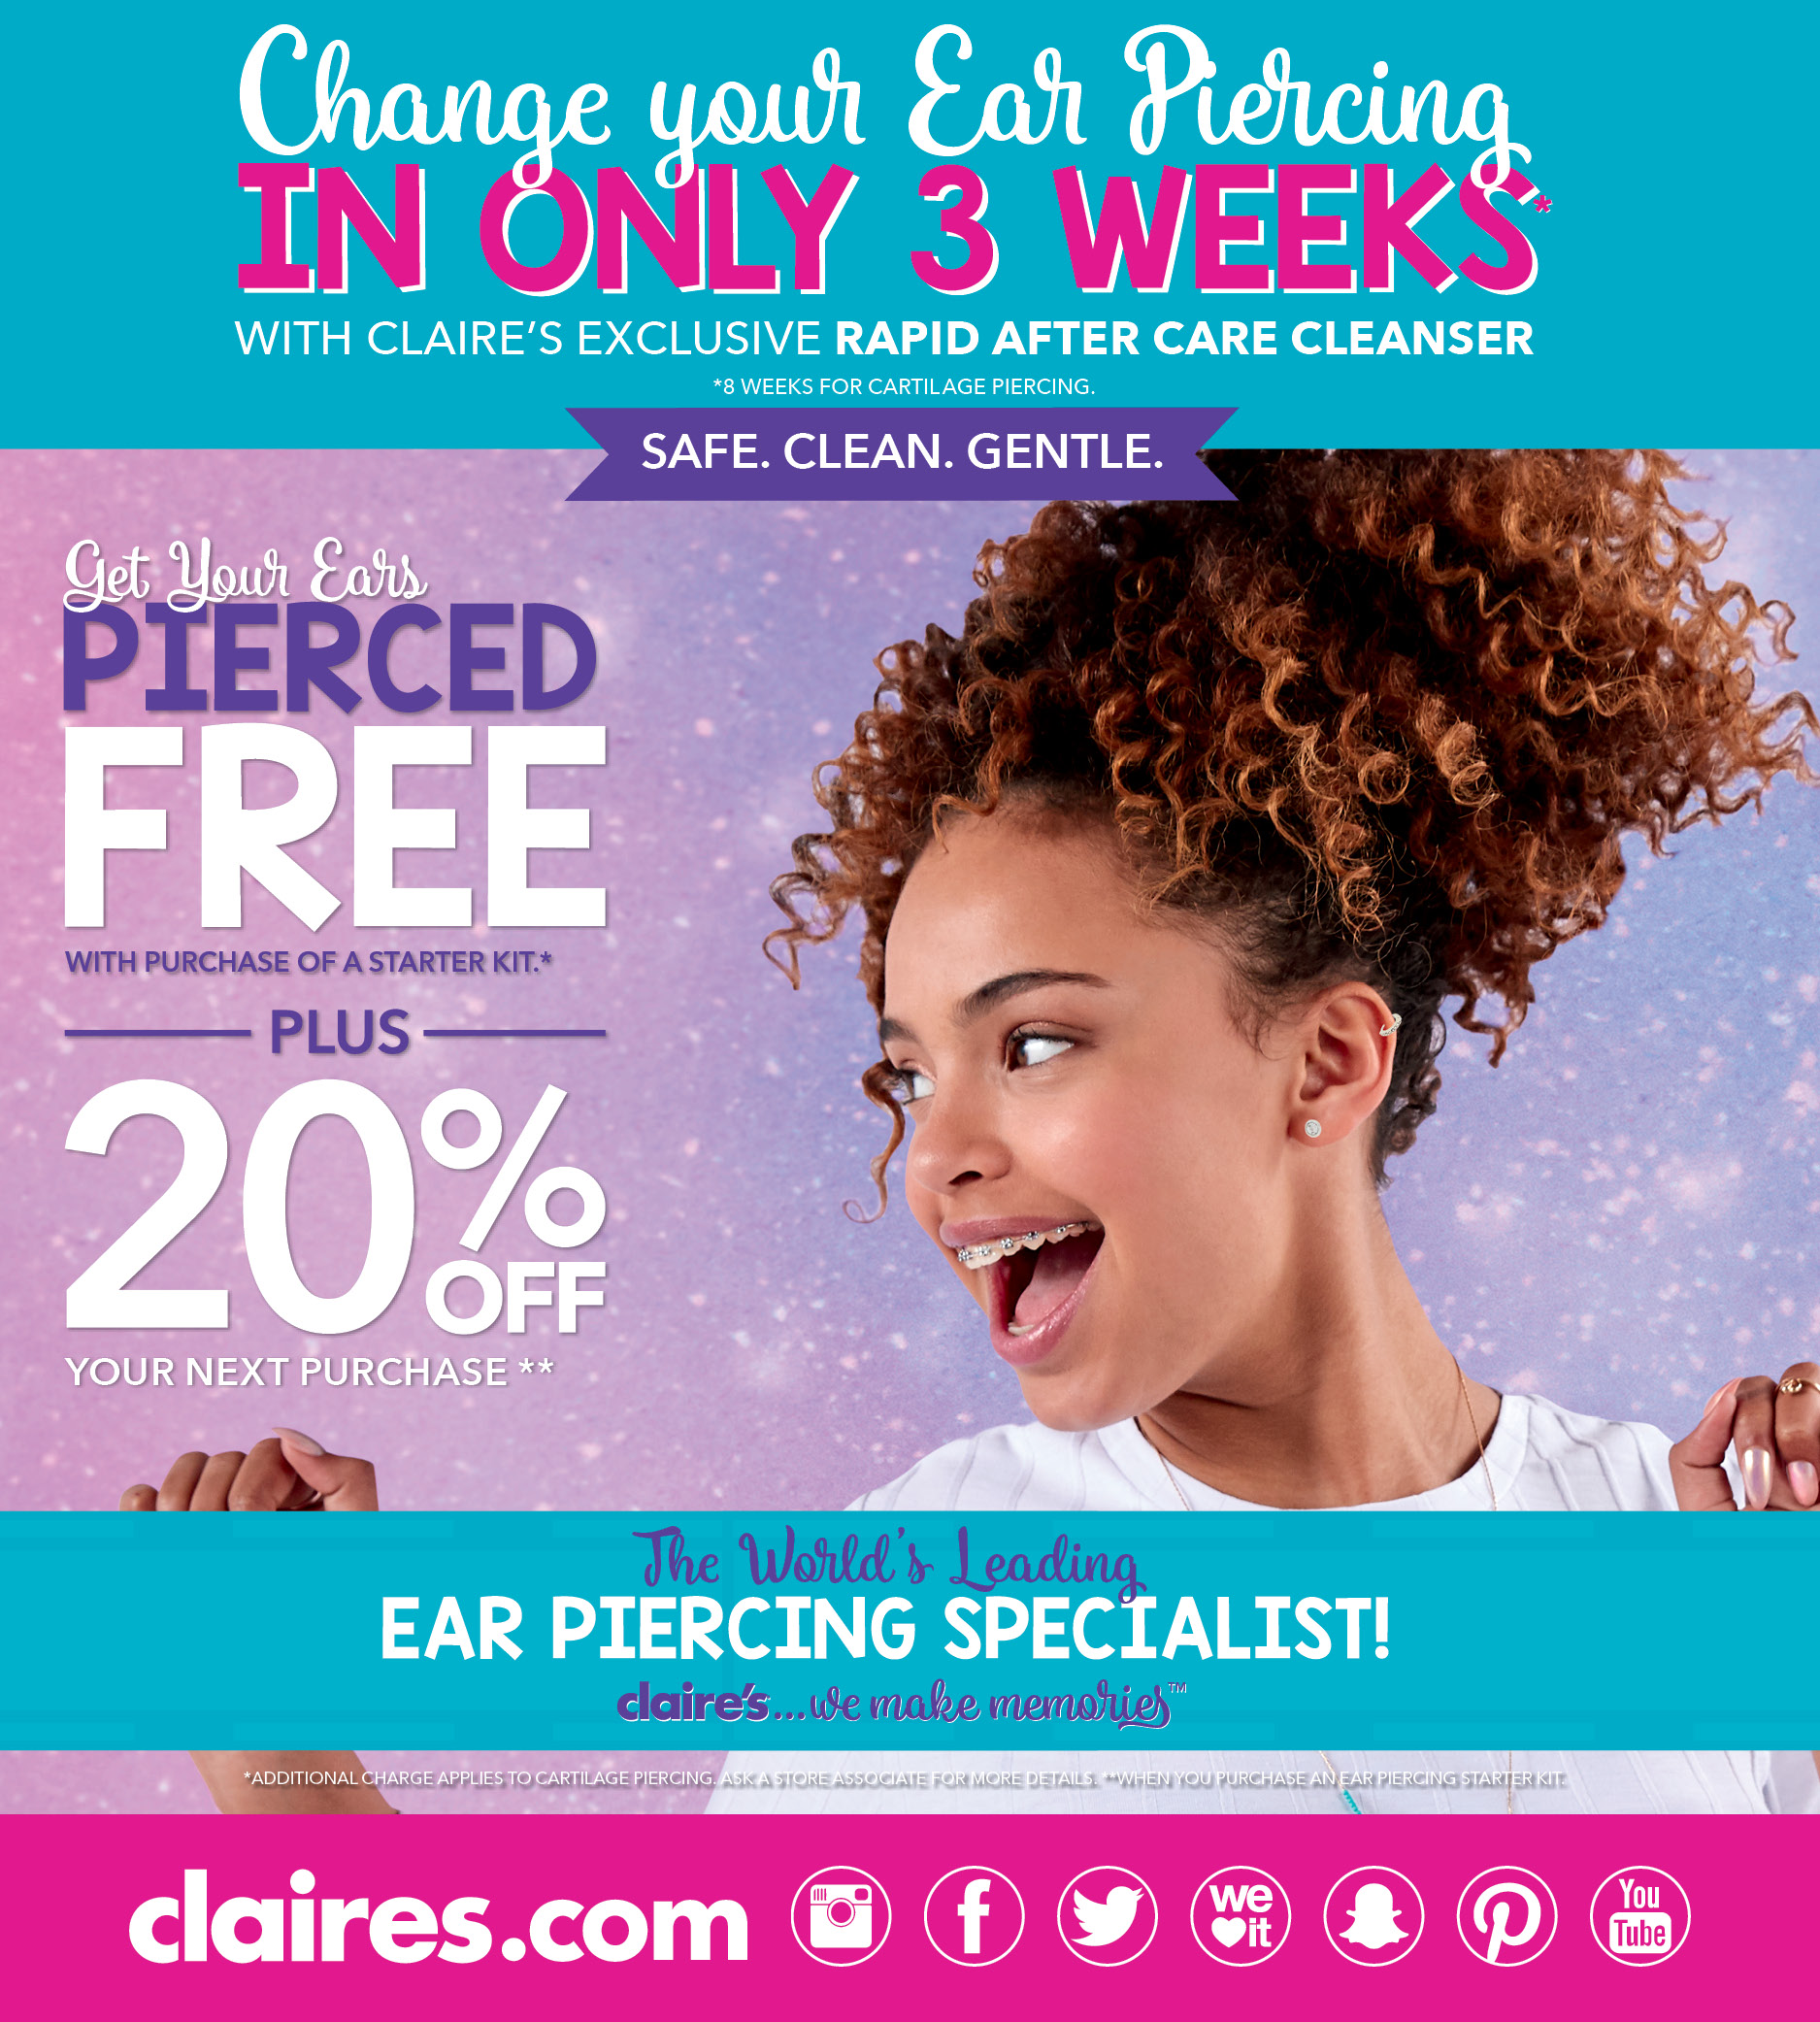 Save 20% When You Get an Ear Piercing